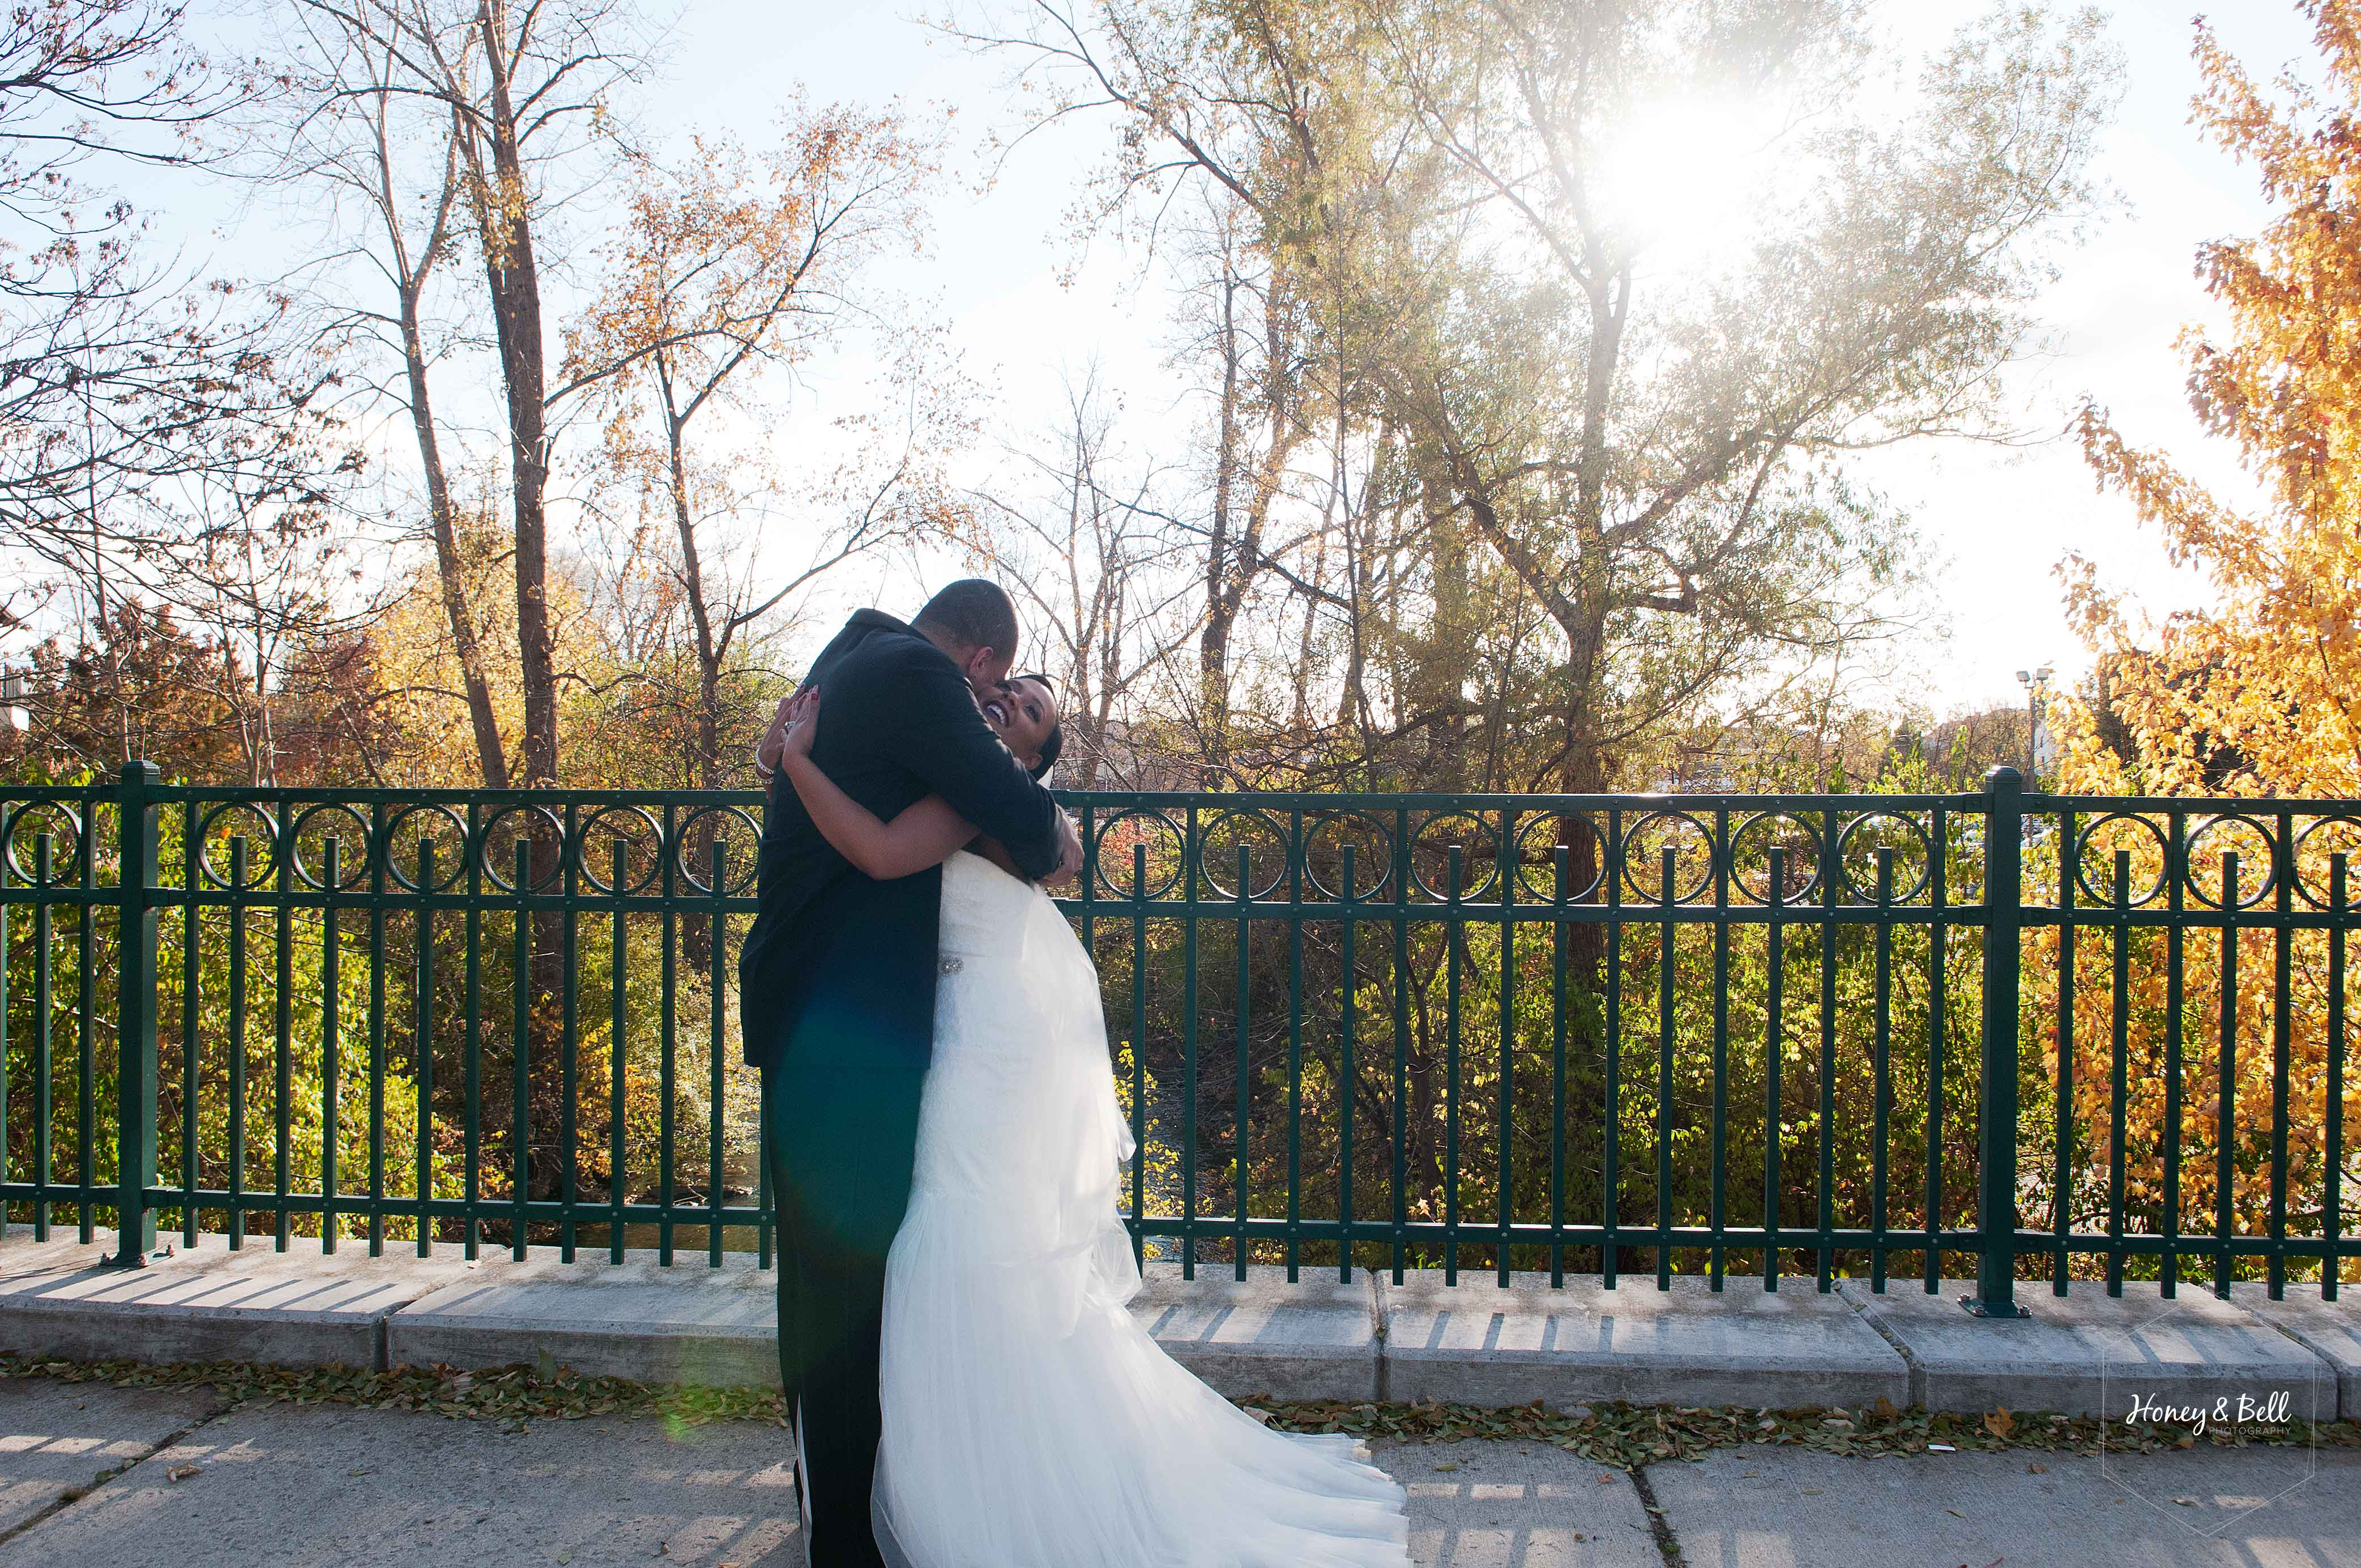 fields-wedding-rochester-michigan-detroit-wedding-photographer-royal-park-hotel-first-look-groom-bride-25